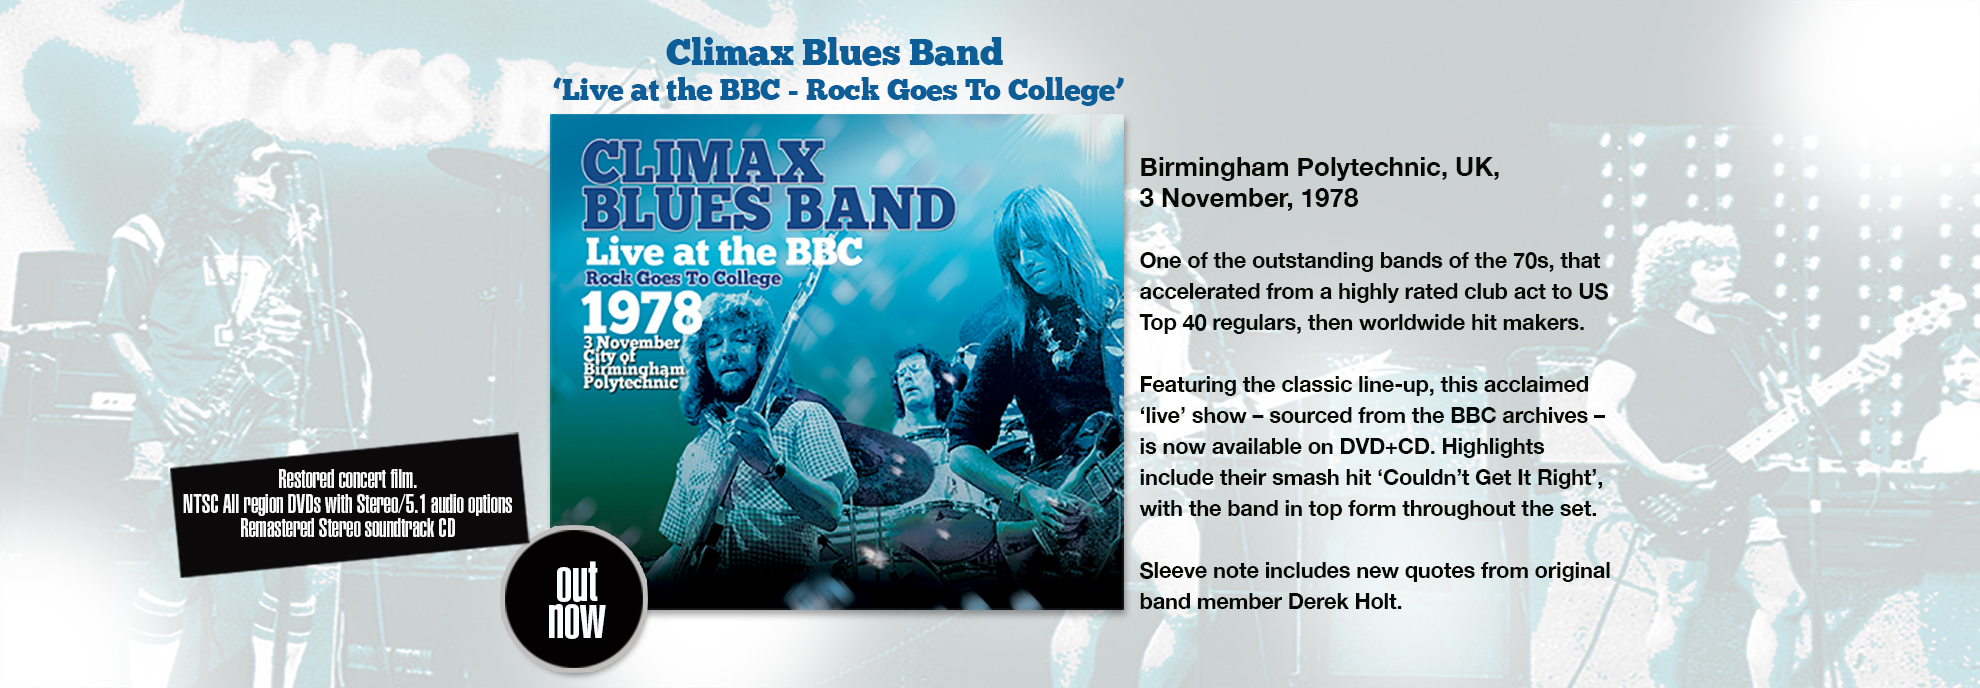 Climax_Blues_Band_BBC_out_now